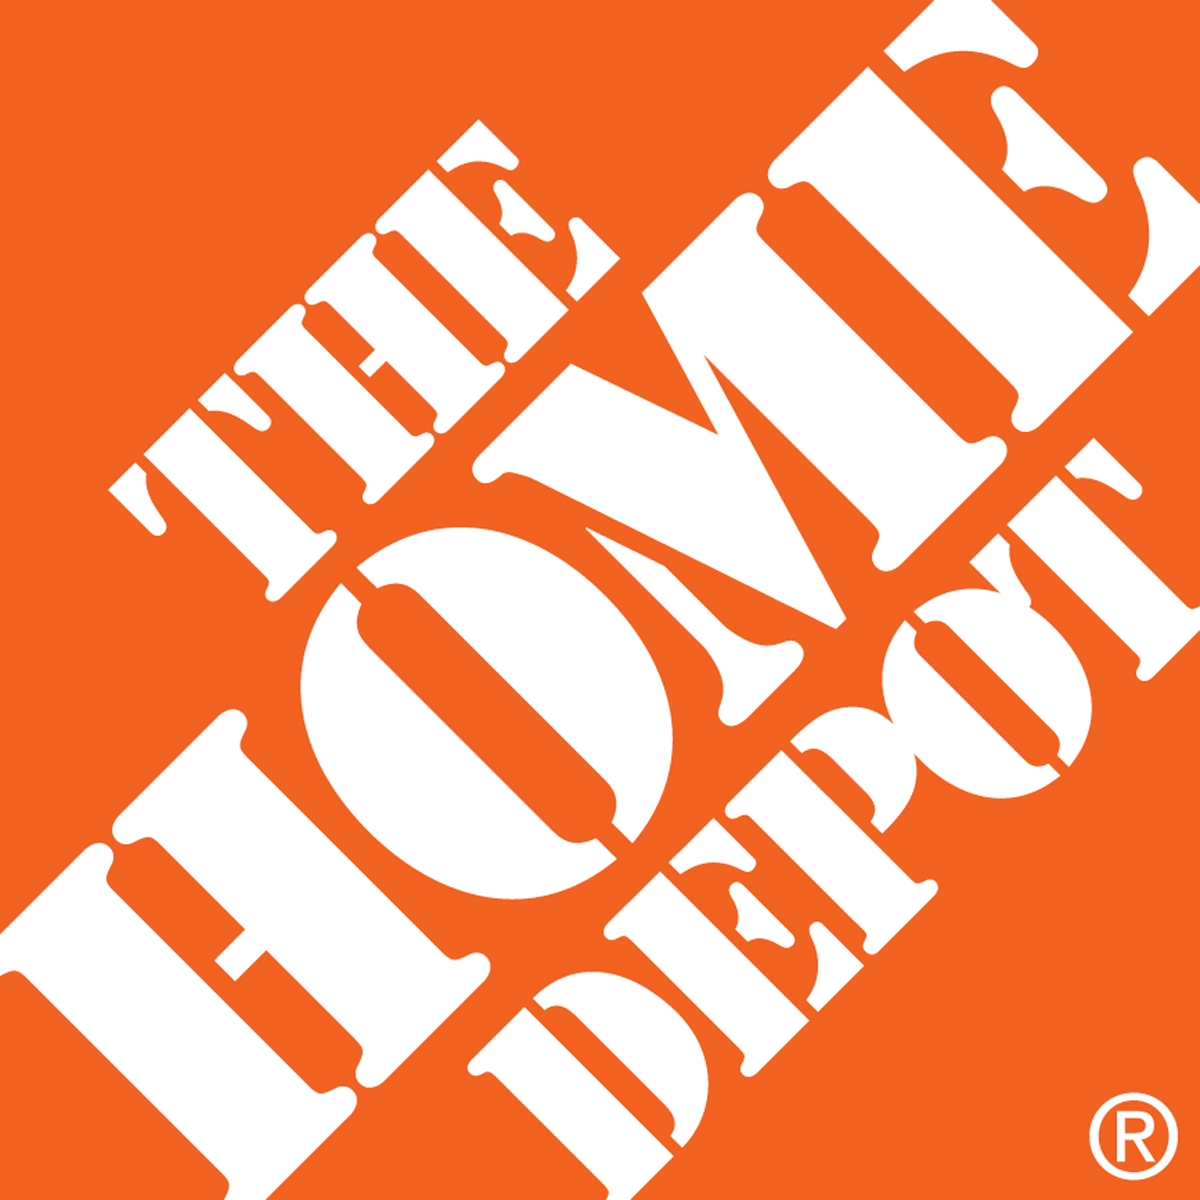 Home Depot Coupons | 10% Discount | January 2018